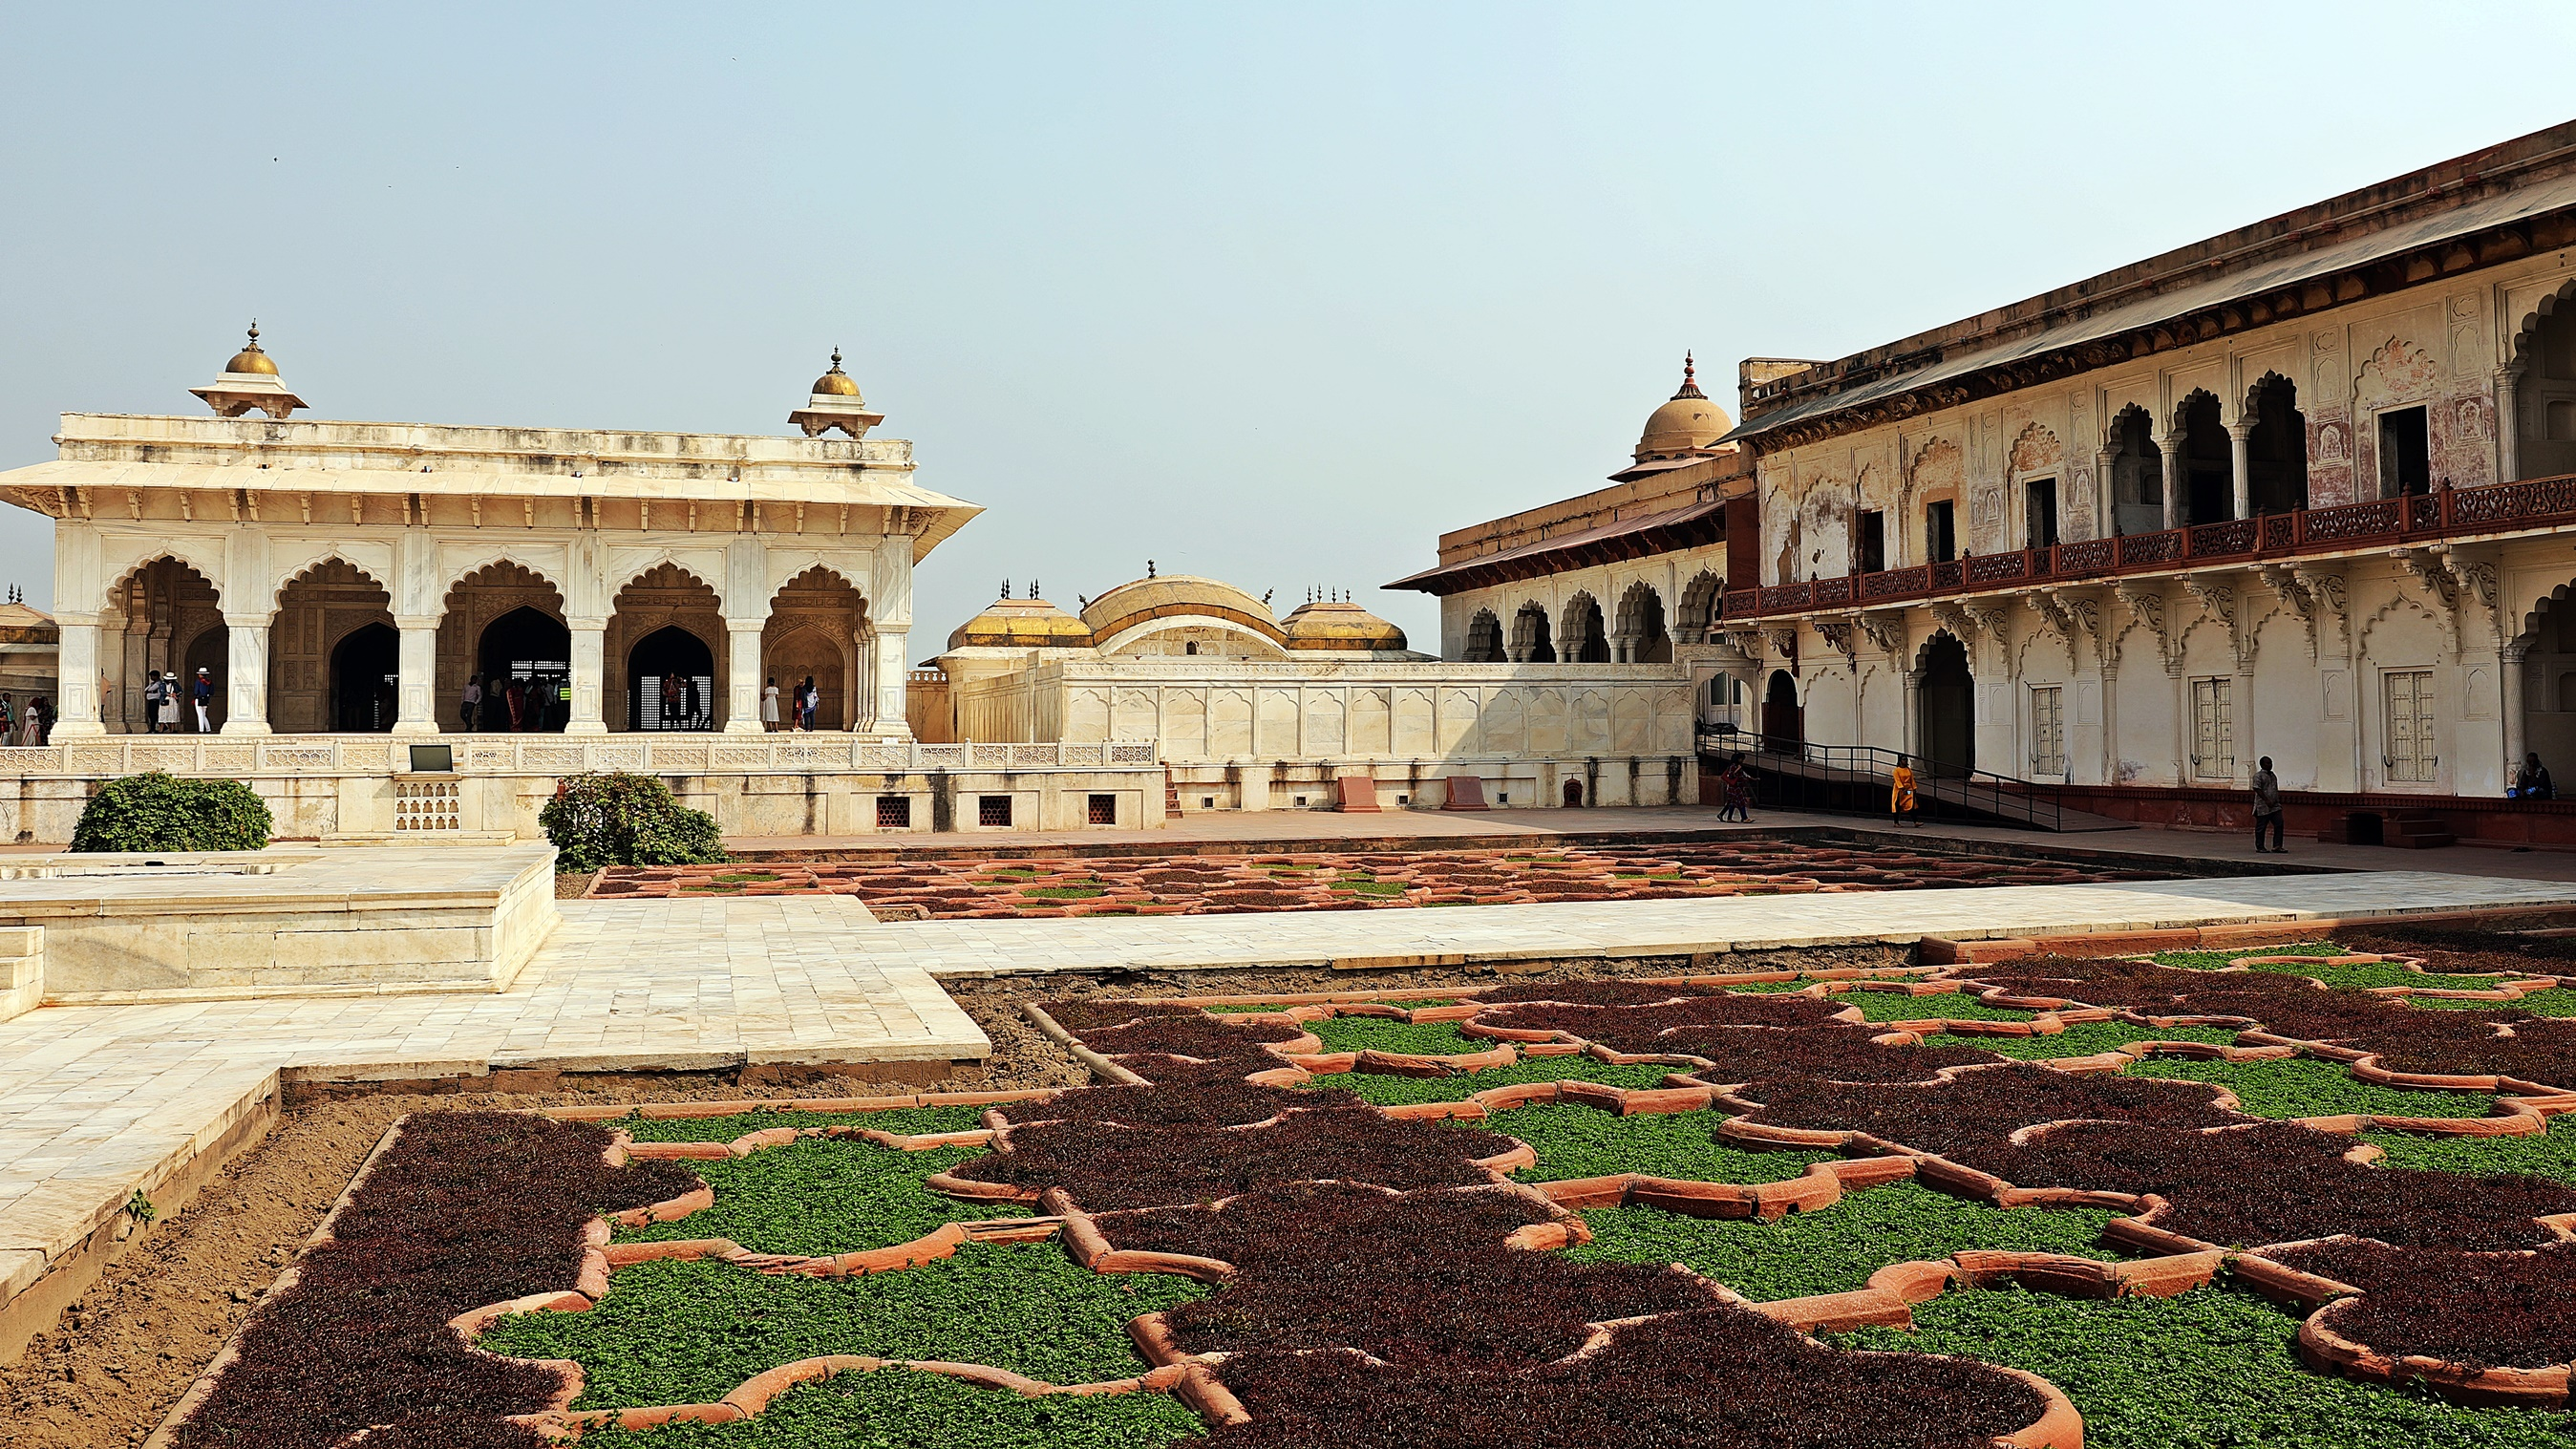 The palace in Agra Fort